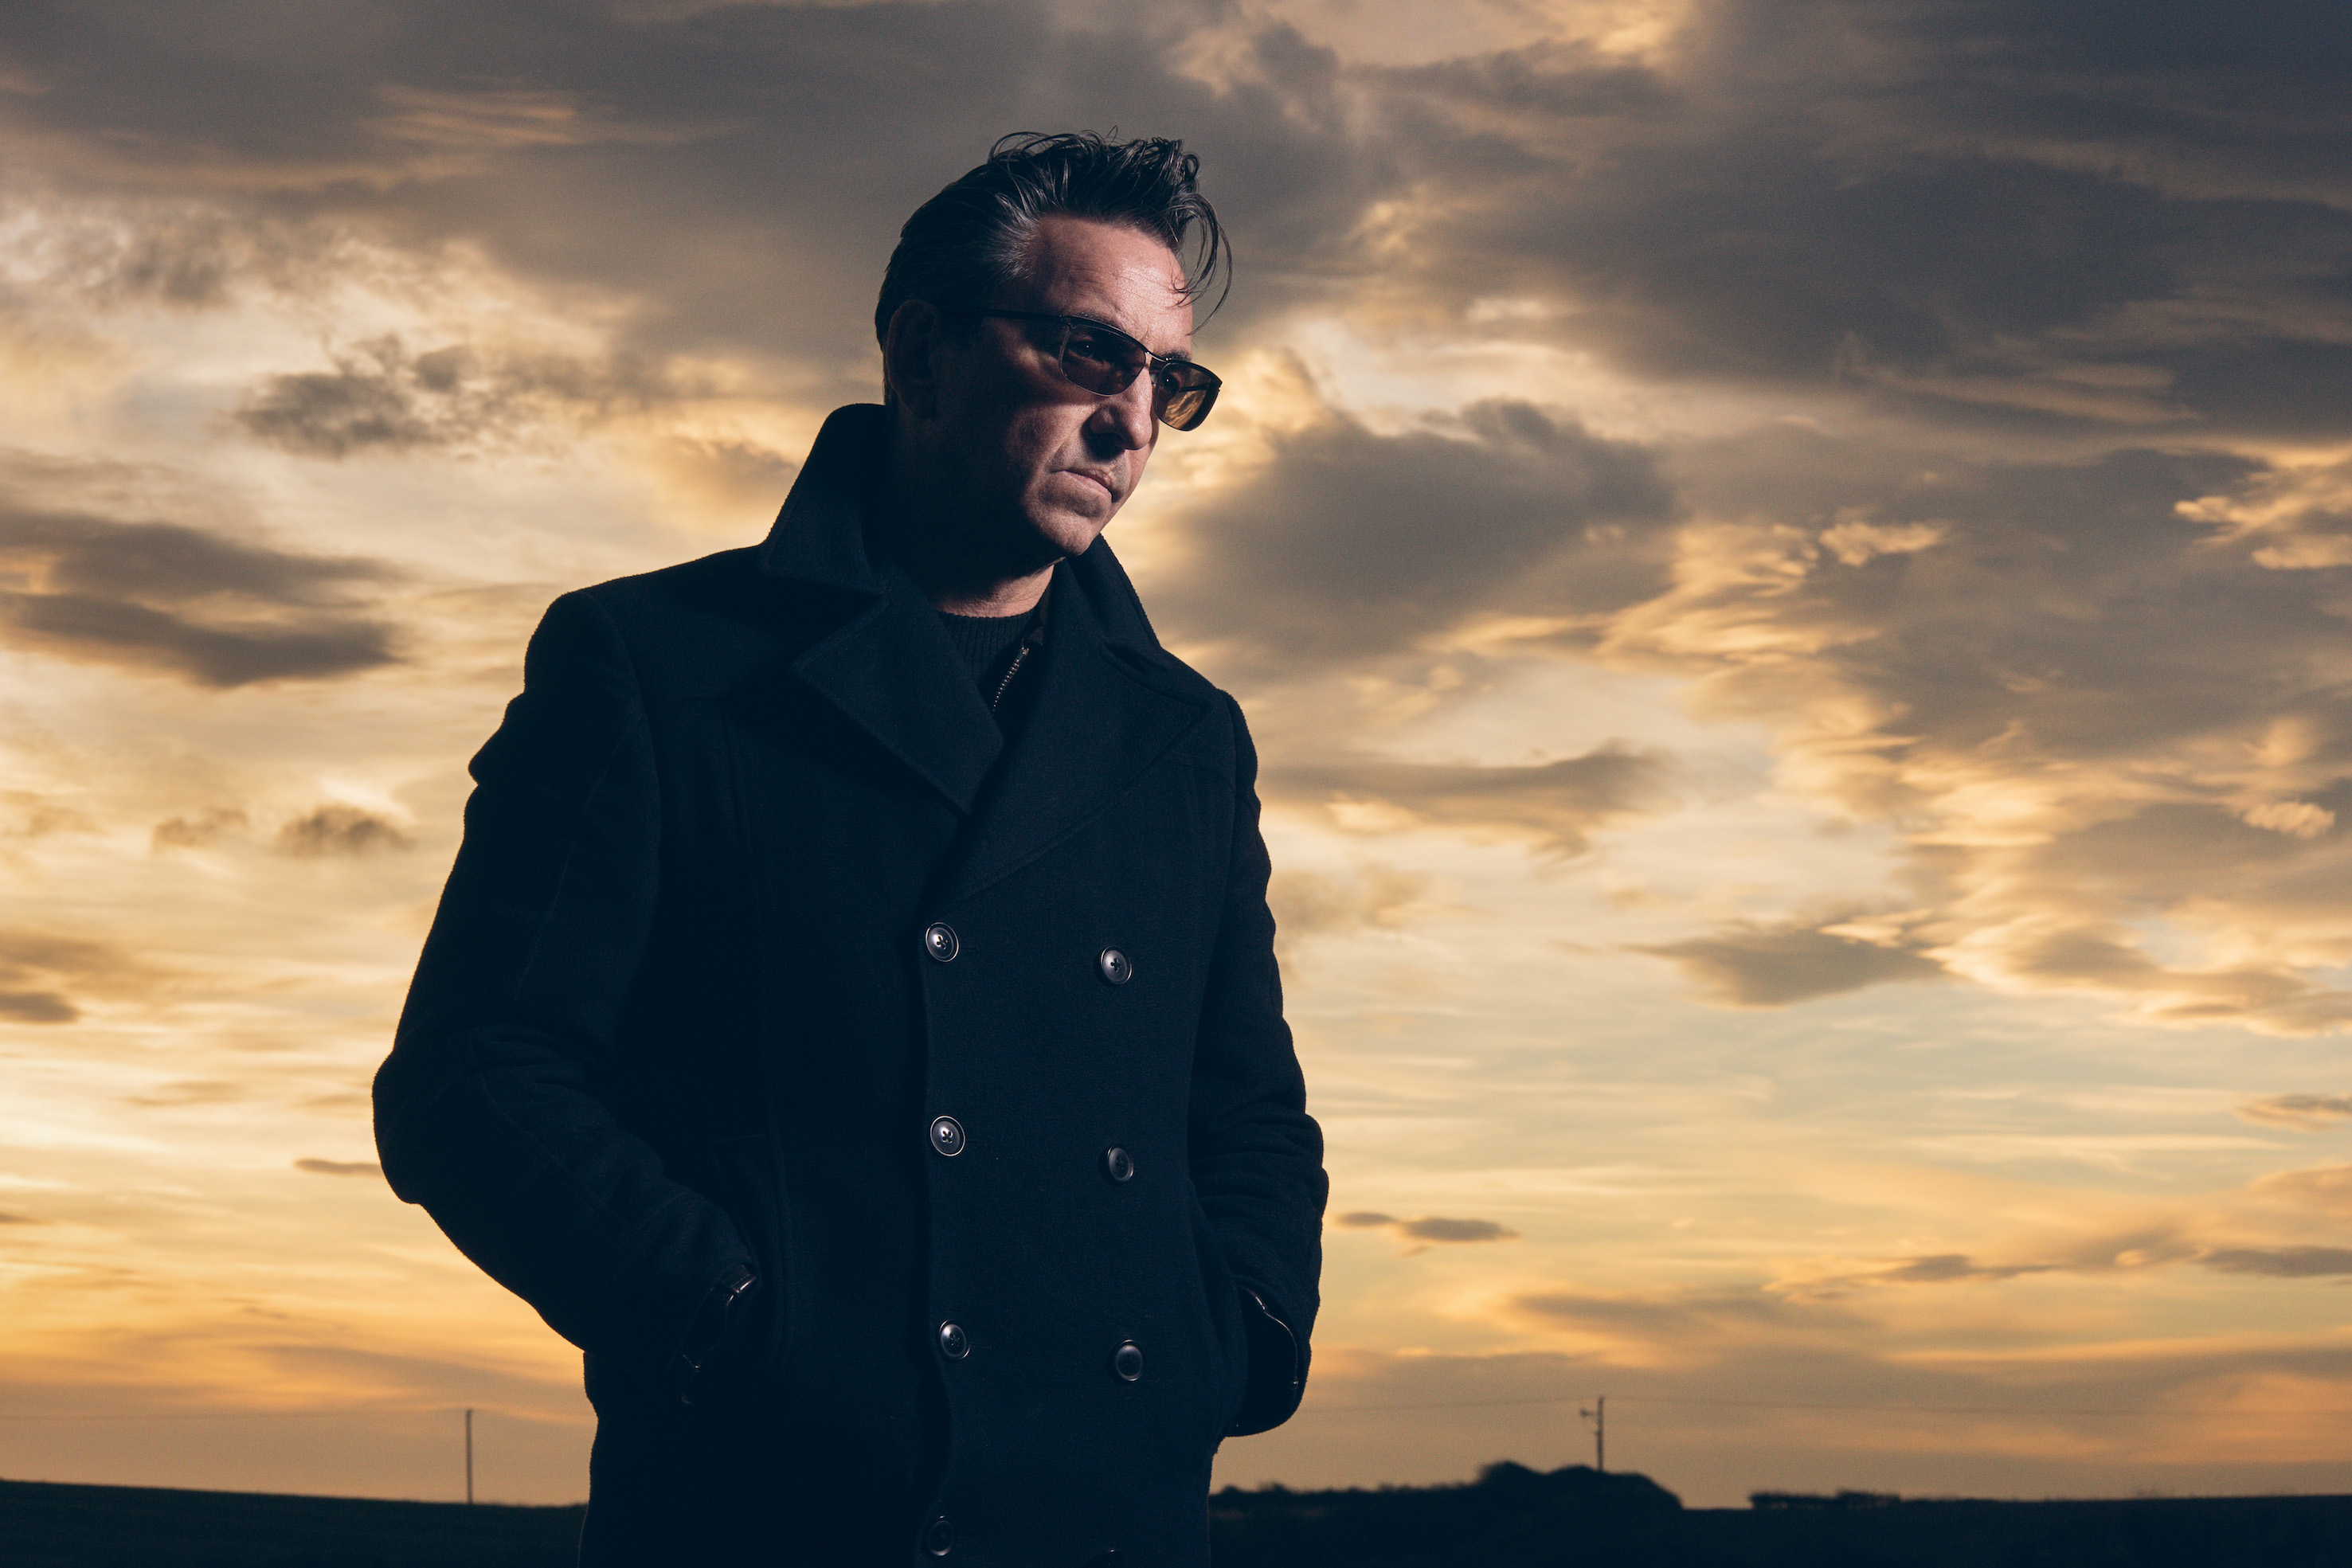 Richard-Hawley_Please-upload-a-lower-res-web-JPEG-photo-for-use-online